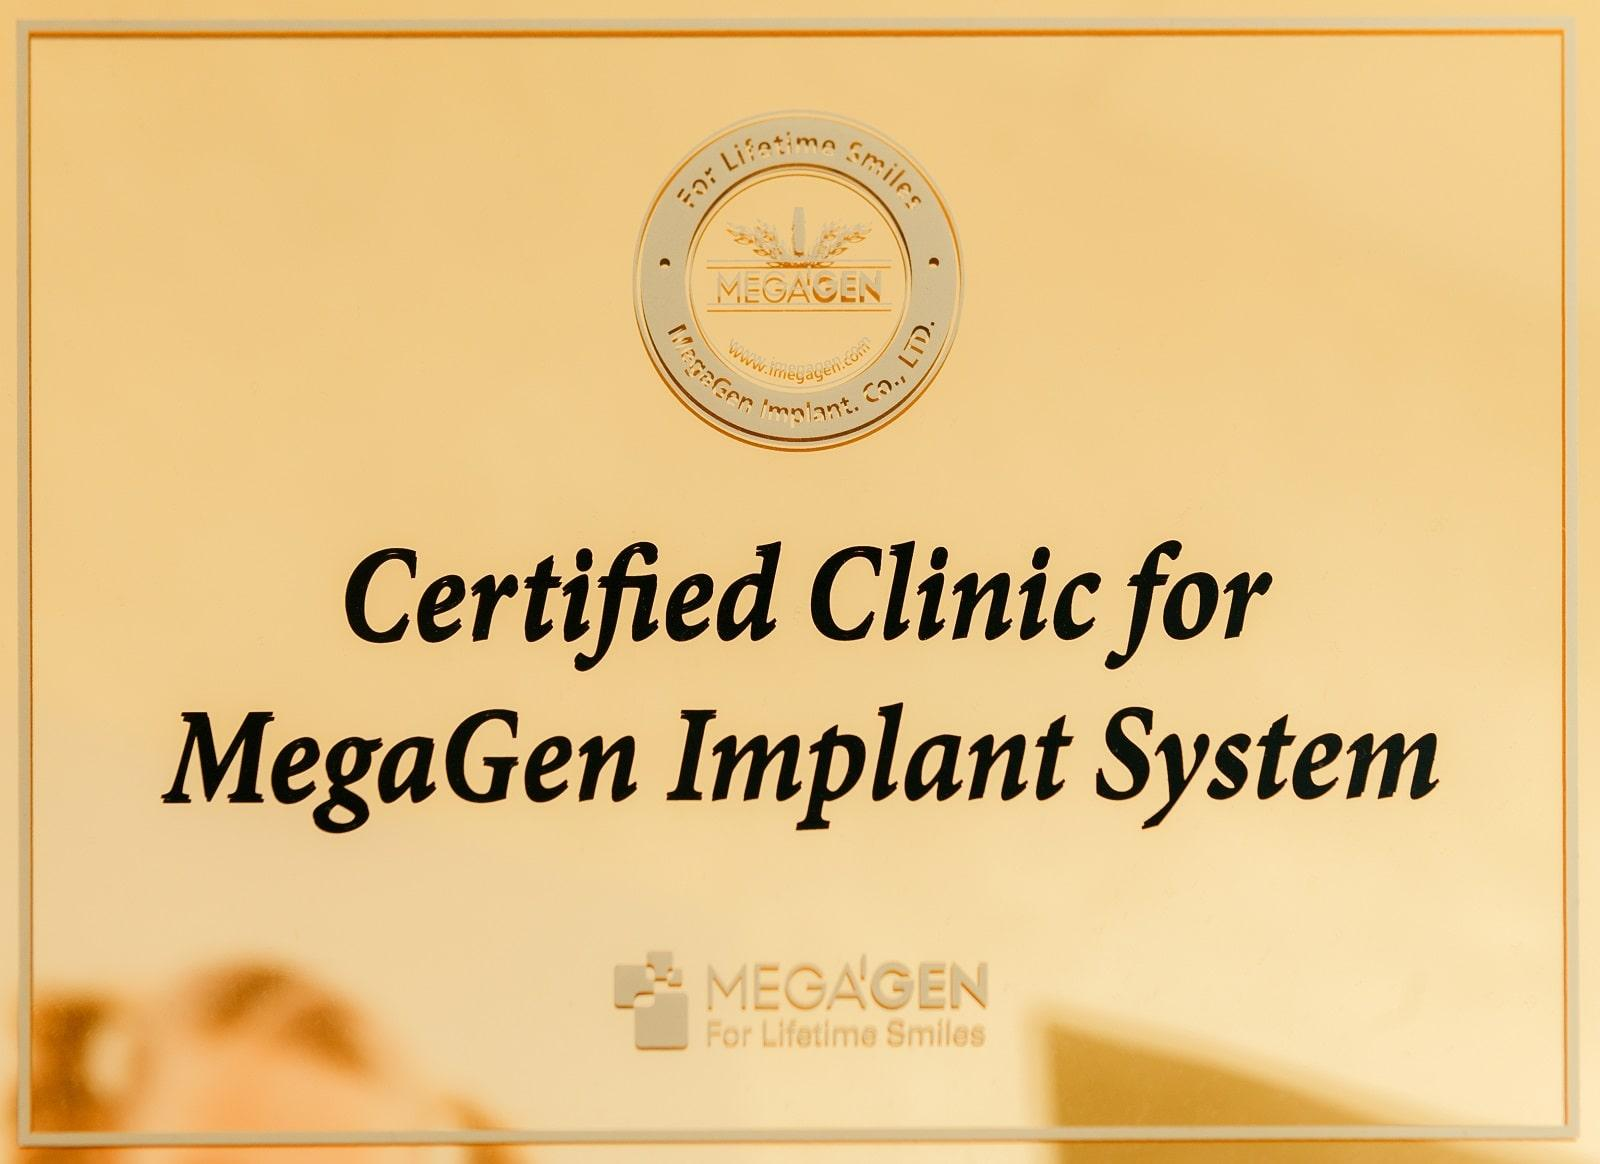 Certificate of the Korean company MegaGen. Awarded to the Dudko & Sons clinic as an official partner certificate, as an indicator of the use of only original components for dental implantation.